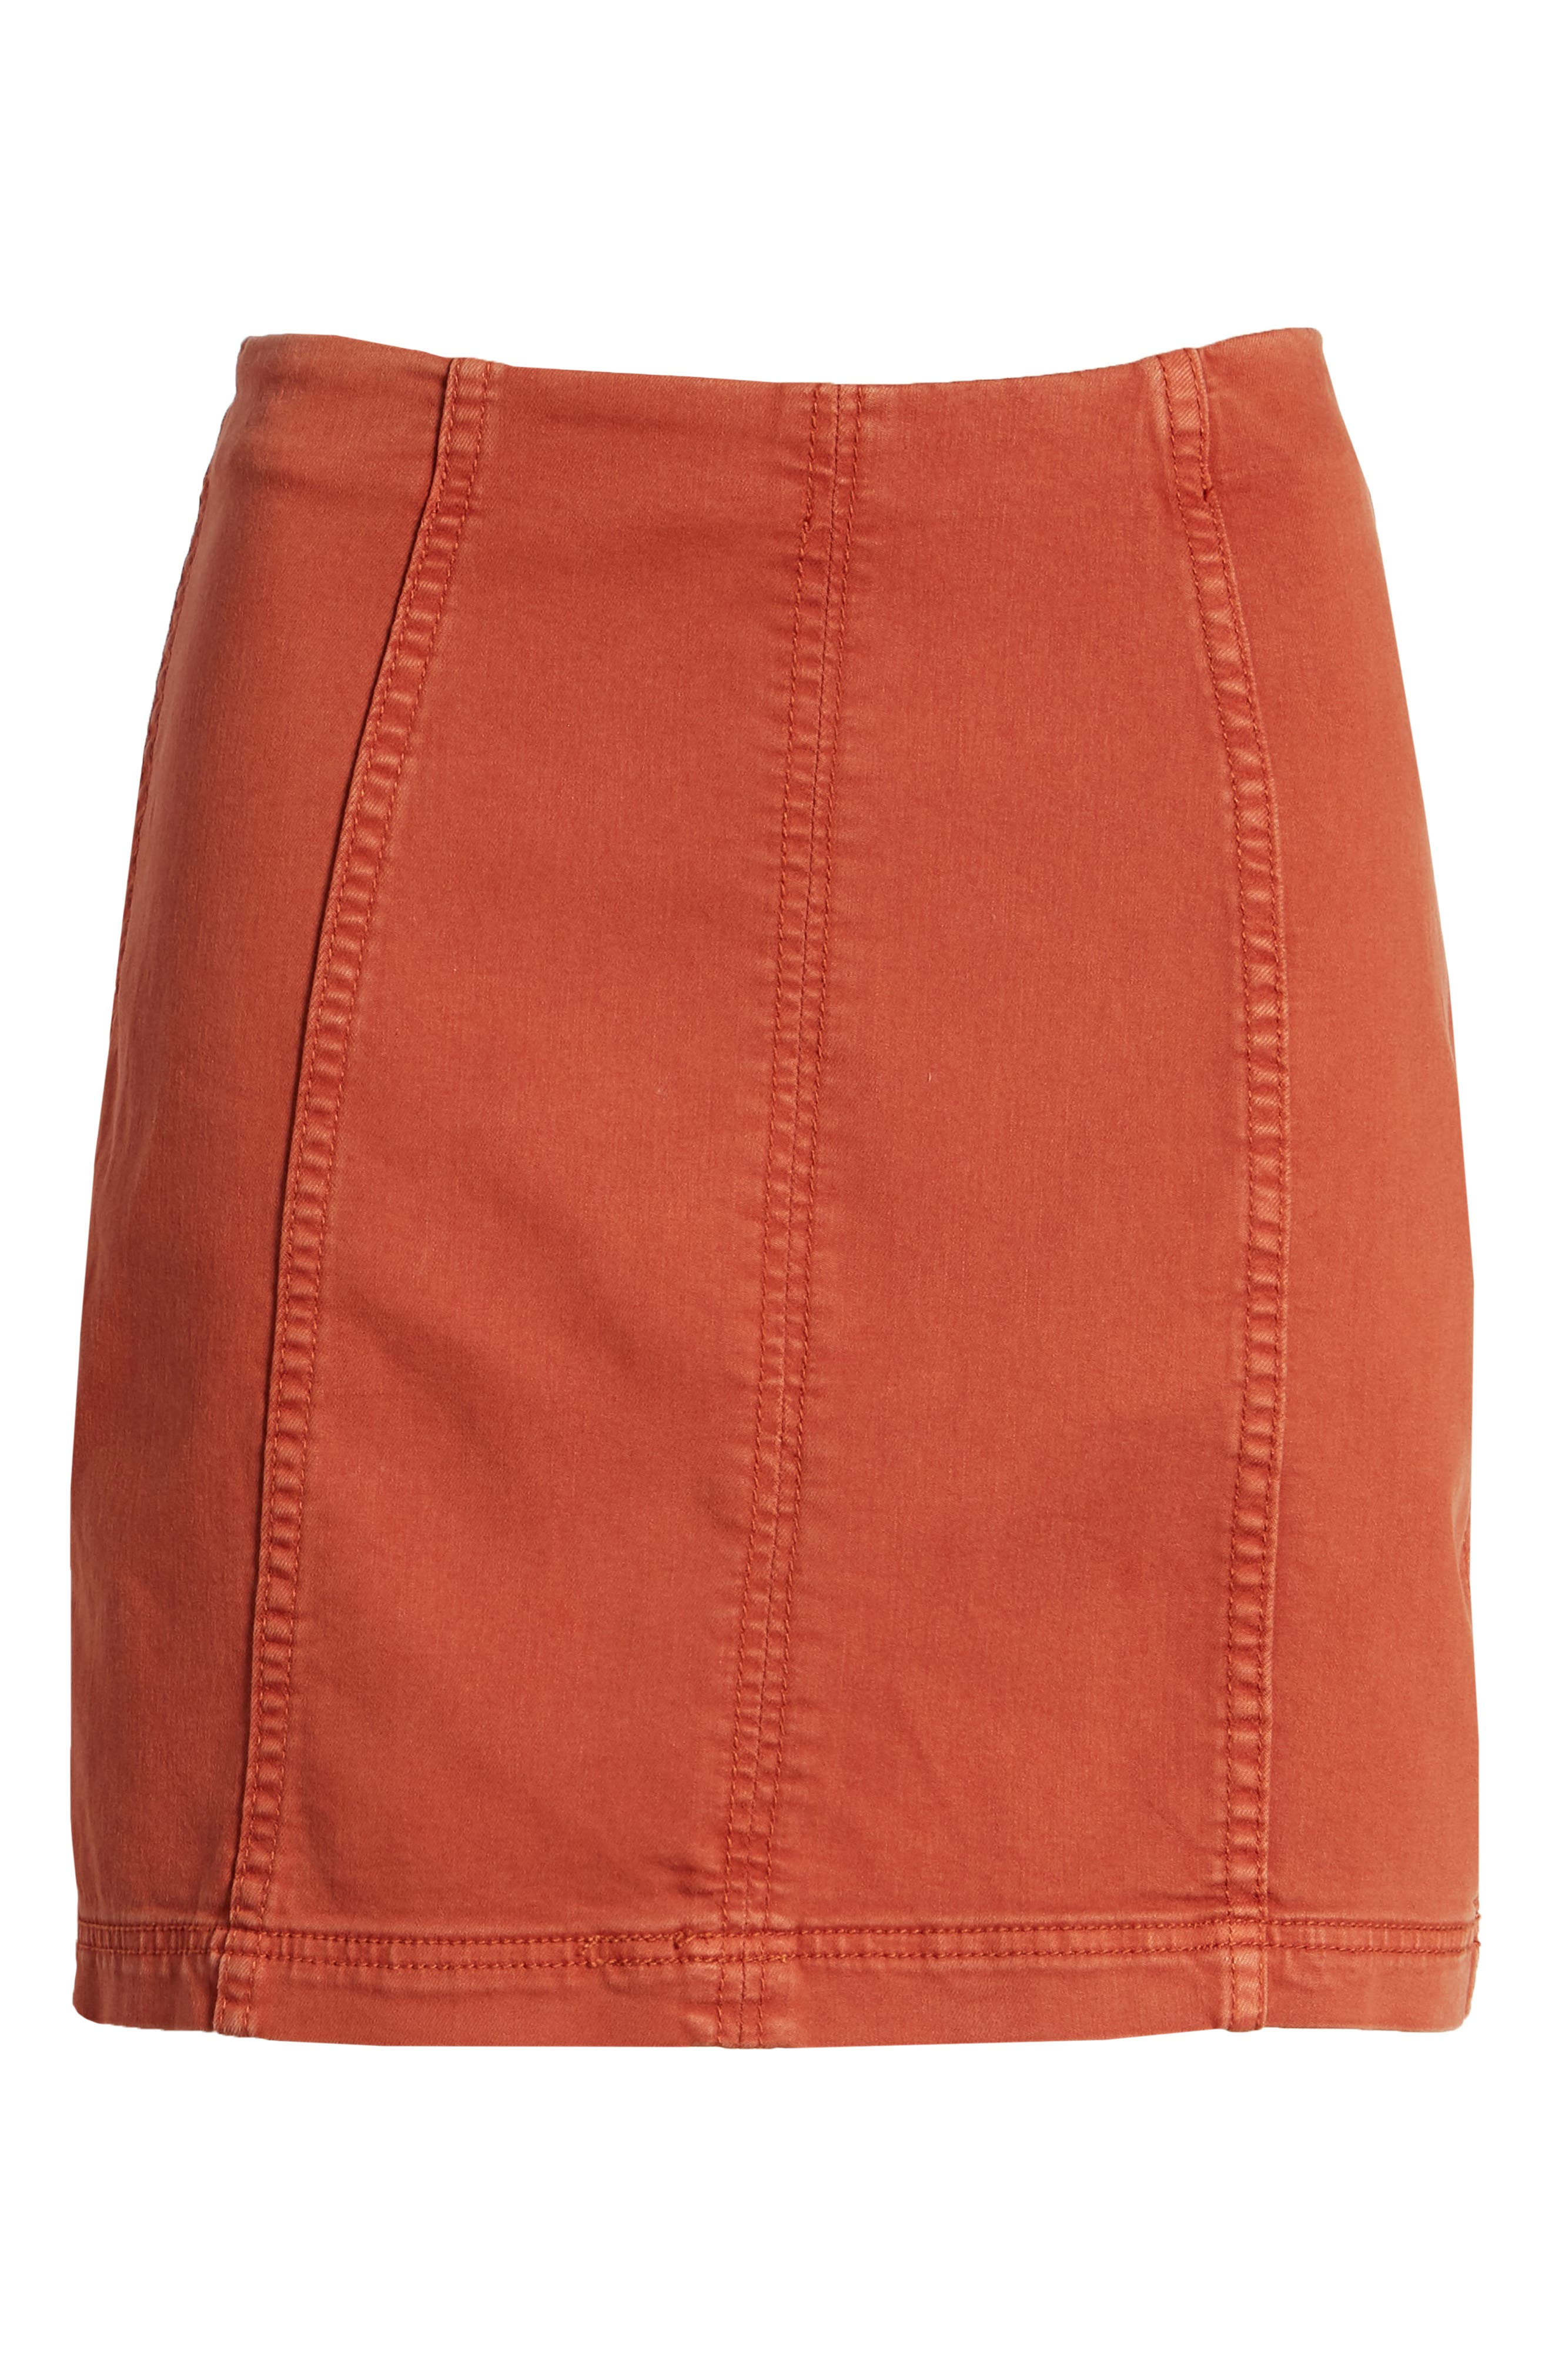 FREE PEOPLE, We the Free by Free People Modern Denim Skirt, Alternate thumbnail 7, color, TERRACOTTA